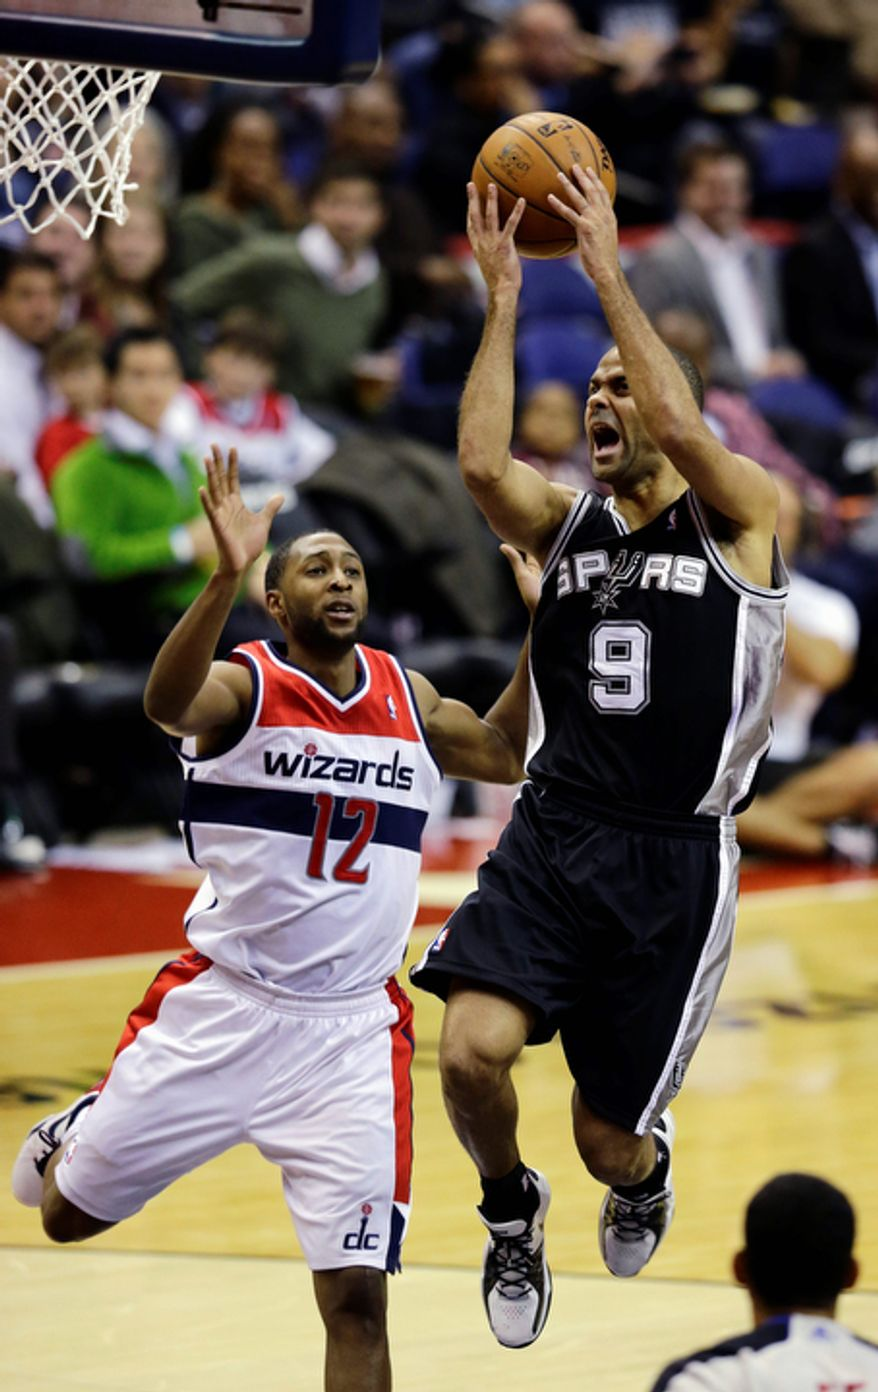 San Antonio Spurs guard Tony Parker shoots past Washington Wizards guard A.J. Price in the second half of an NBA basketball game Monday, Nov. 26, 2012, in Washington. The Spurs won 118-92. The Wizards are now 0-12. (AP Photo/Alex Brandon)